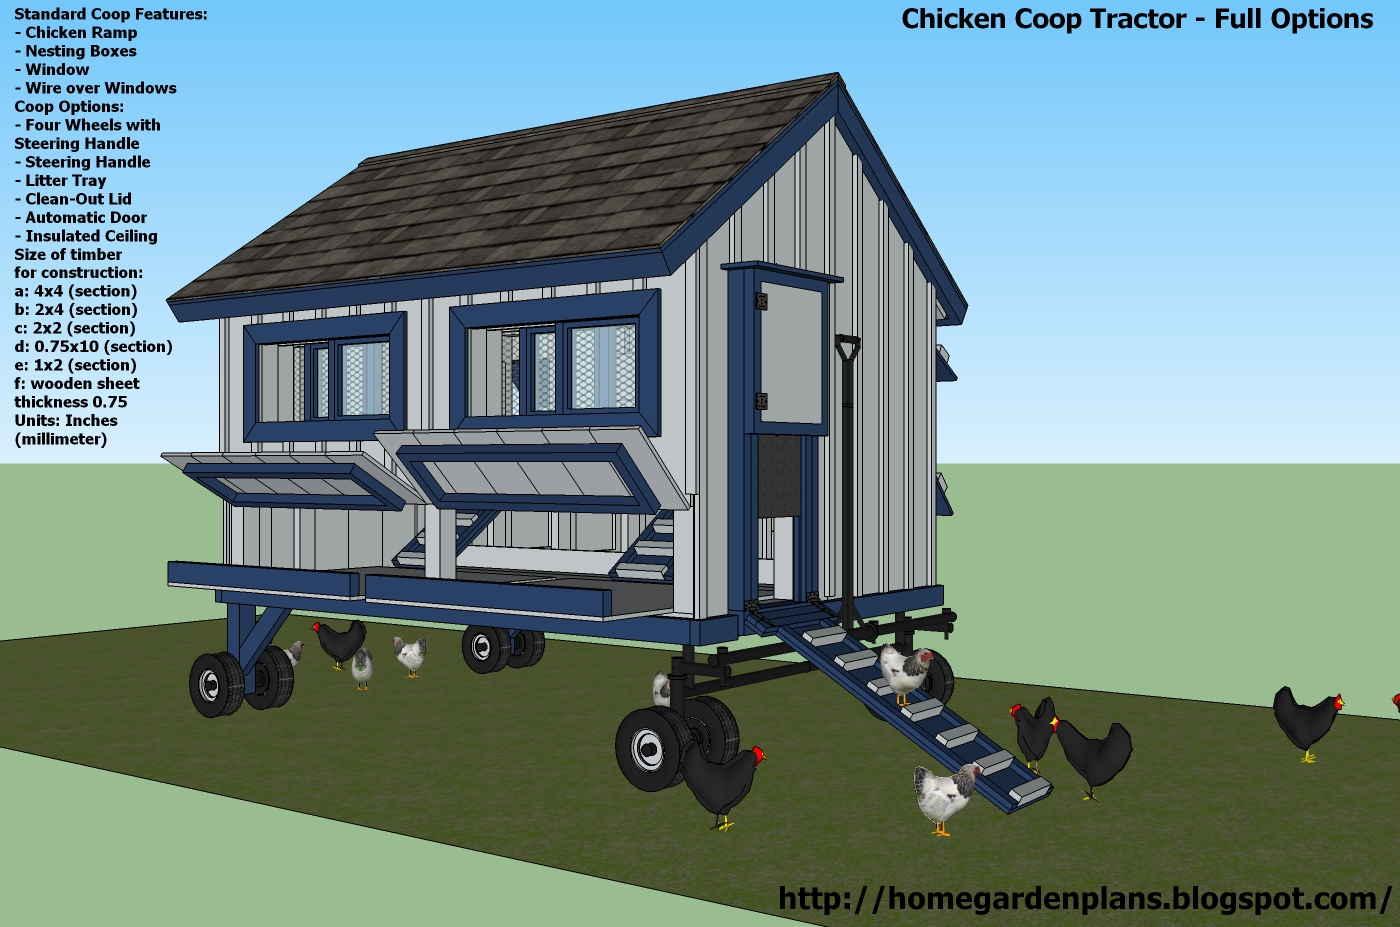 How to make a chicken coop out of a metal shed must see for Mobile hen house plans